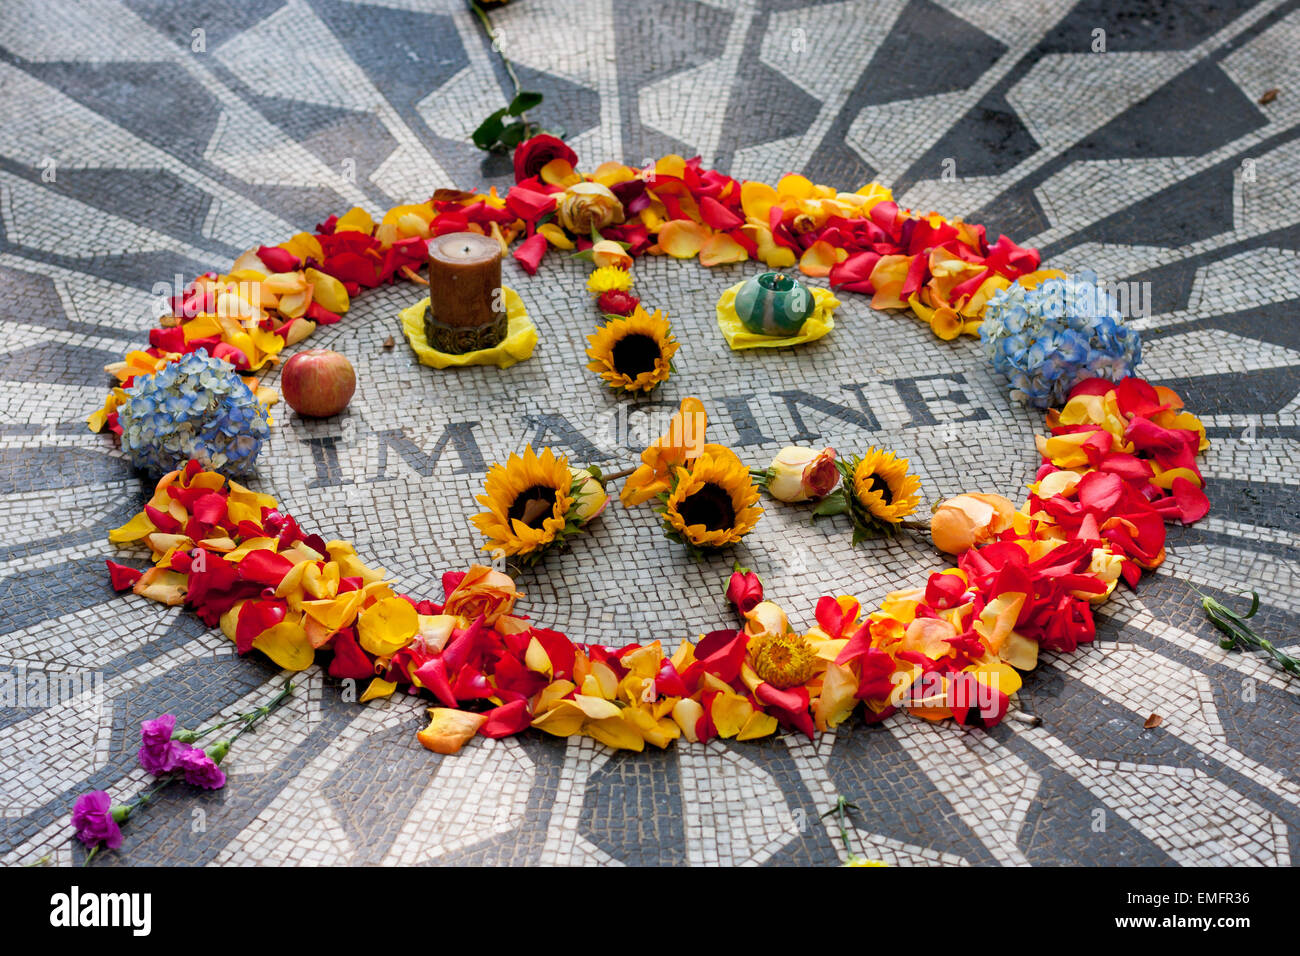 Imagine memorial to John Lennon in Strawberry Fields in Central Park - New York City in October 2008 - Stock Image